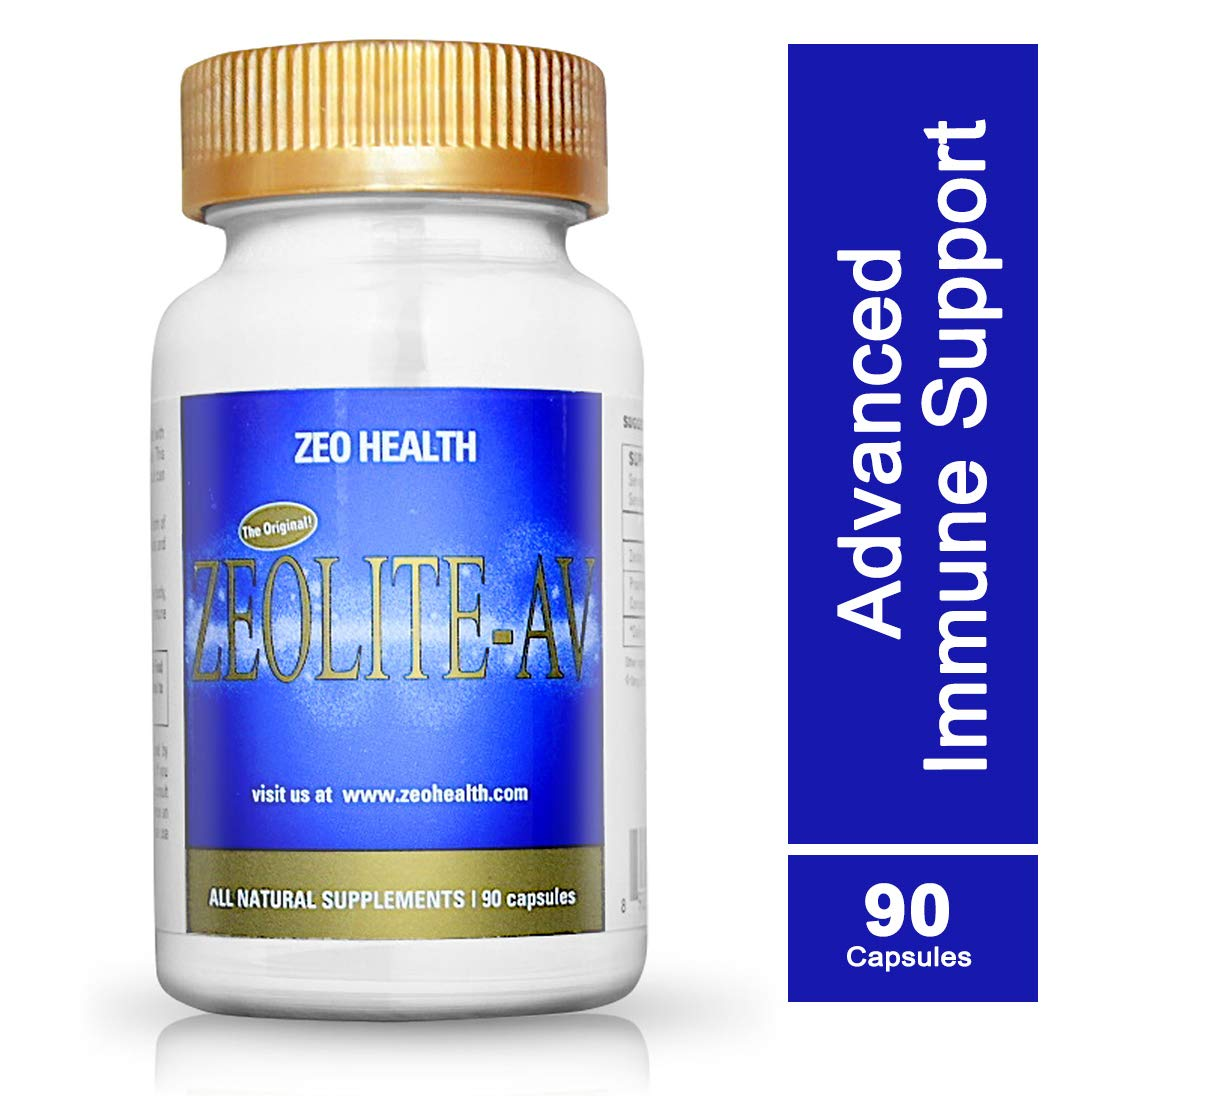 Zeolite AV Capsules Potent Immune System Booster with Humic Acid Restore Trace Minerals, Replenish Electrolytes, Remove Toxins Promotes Energy, Restful Sleep, Alleviates Brain Fog 90 Count